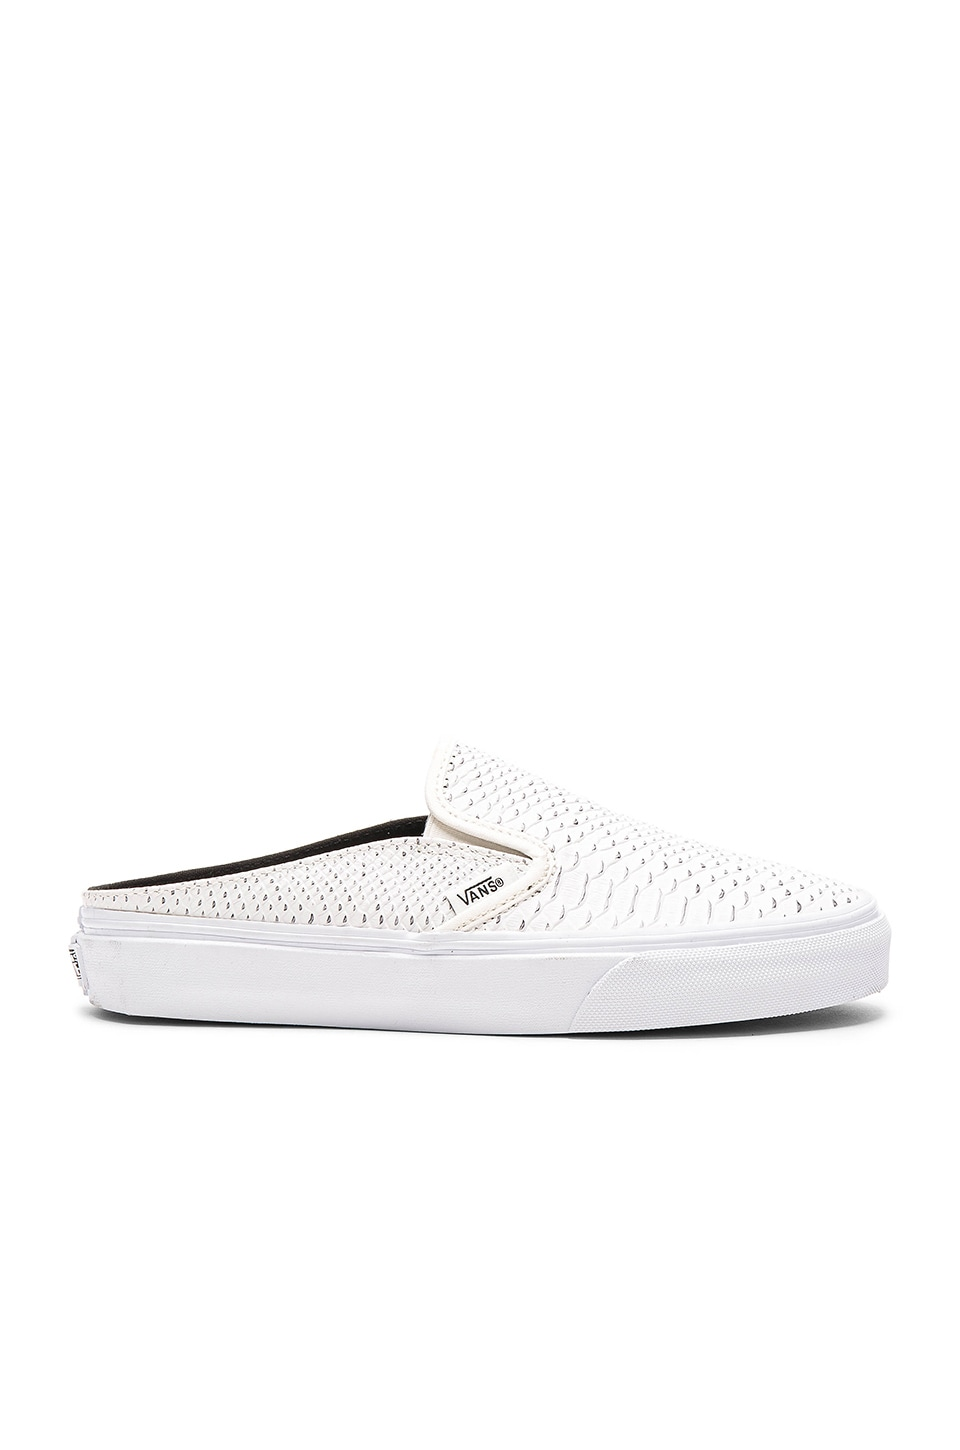 9228ff2917 Vans Embossed Python Classic Slip-On Mule in White   True White ...